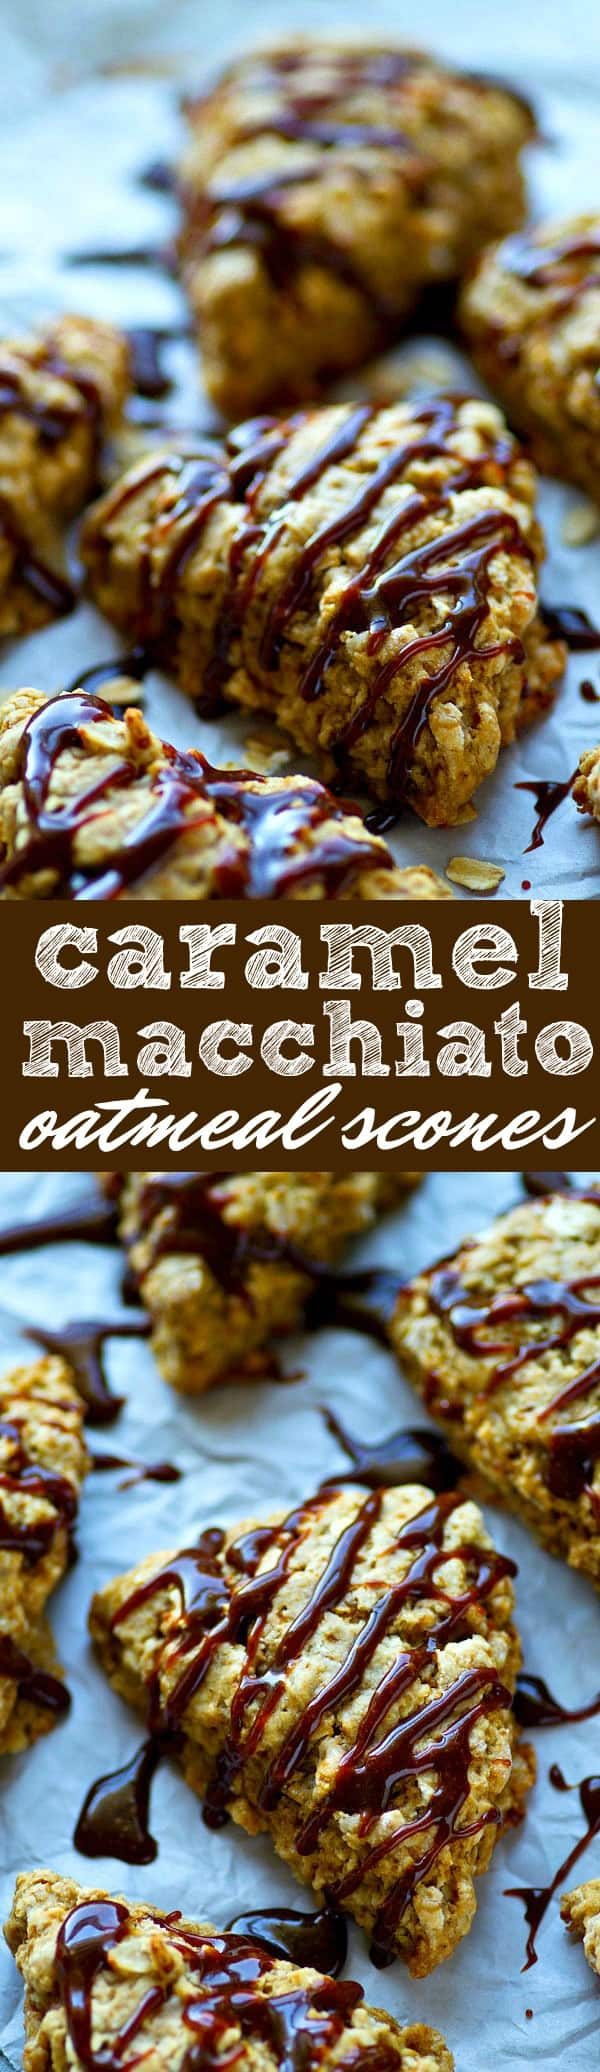 Any caramel macchiato fan is going to go crazy over these bakery-style scones! Soft and flaky oatmeal scones are drizzled with a homemade salted caramel sauce for the ultimate coffee shop indulgence!